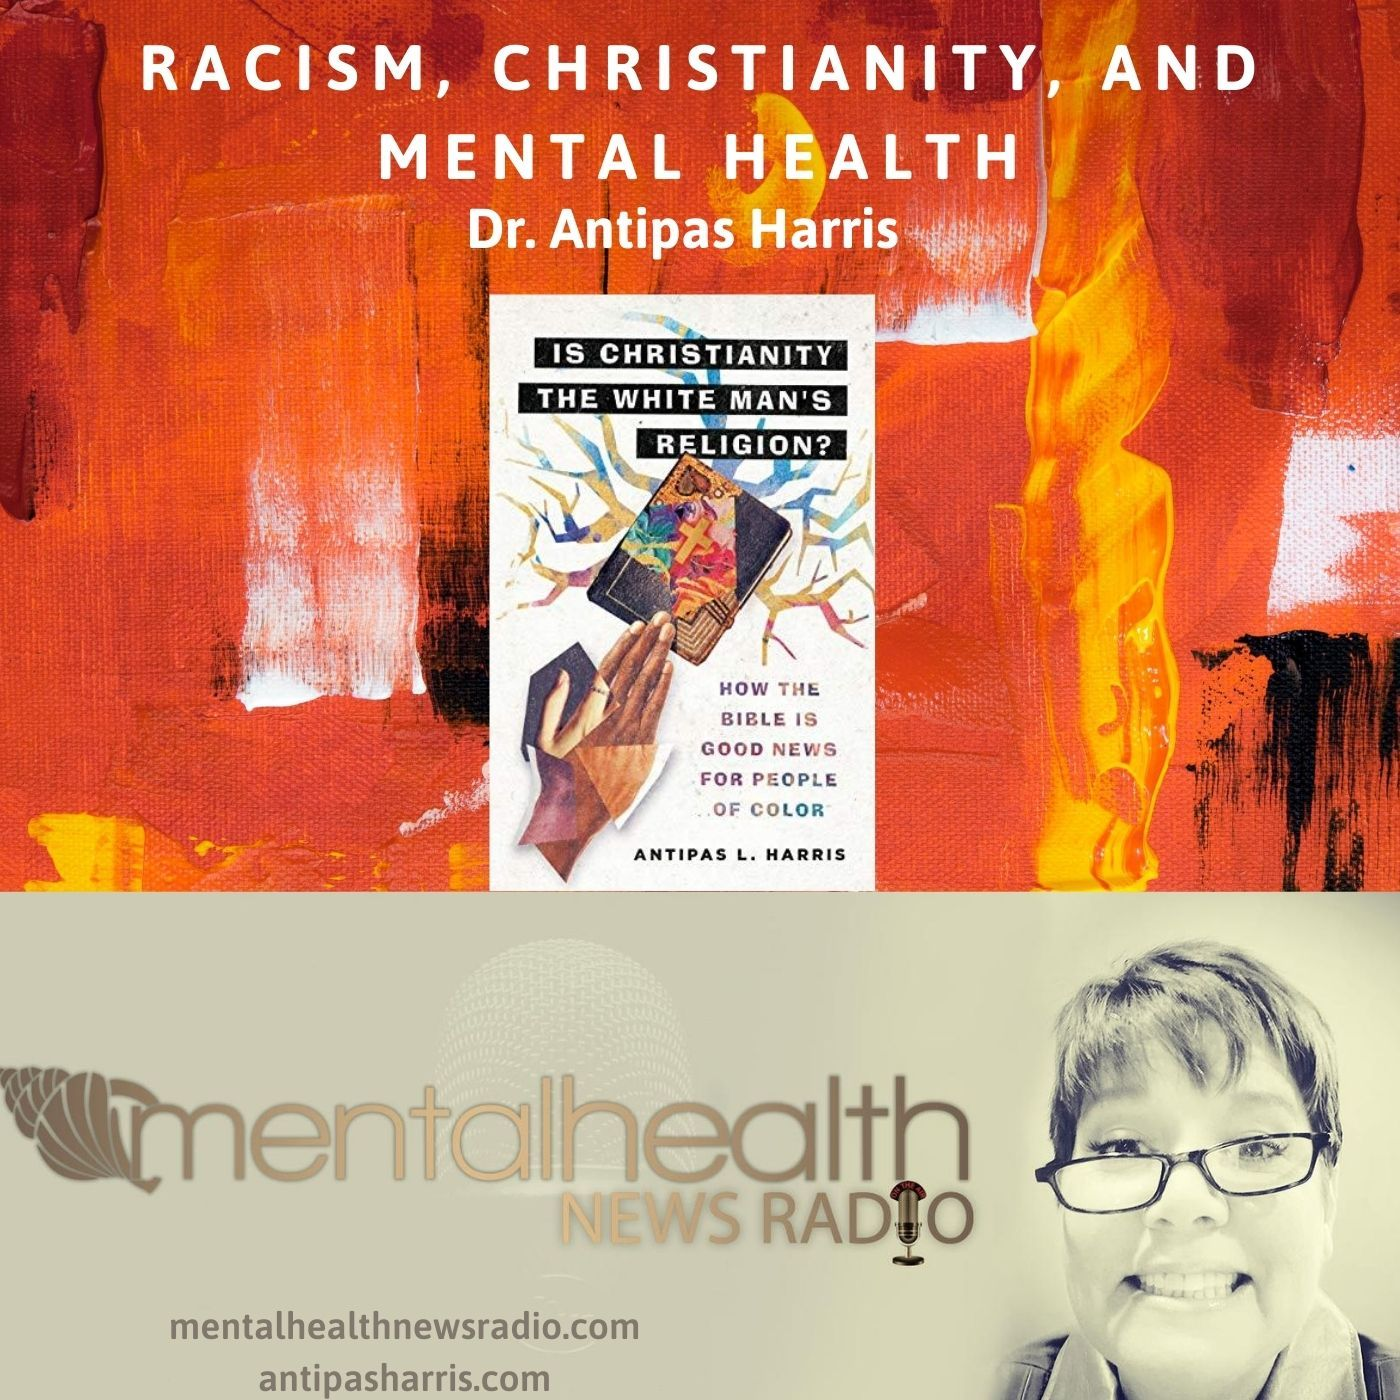 Mental Health News Radio - Racism, Christianity, and Mental Health with Dr. Antipas Harris